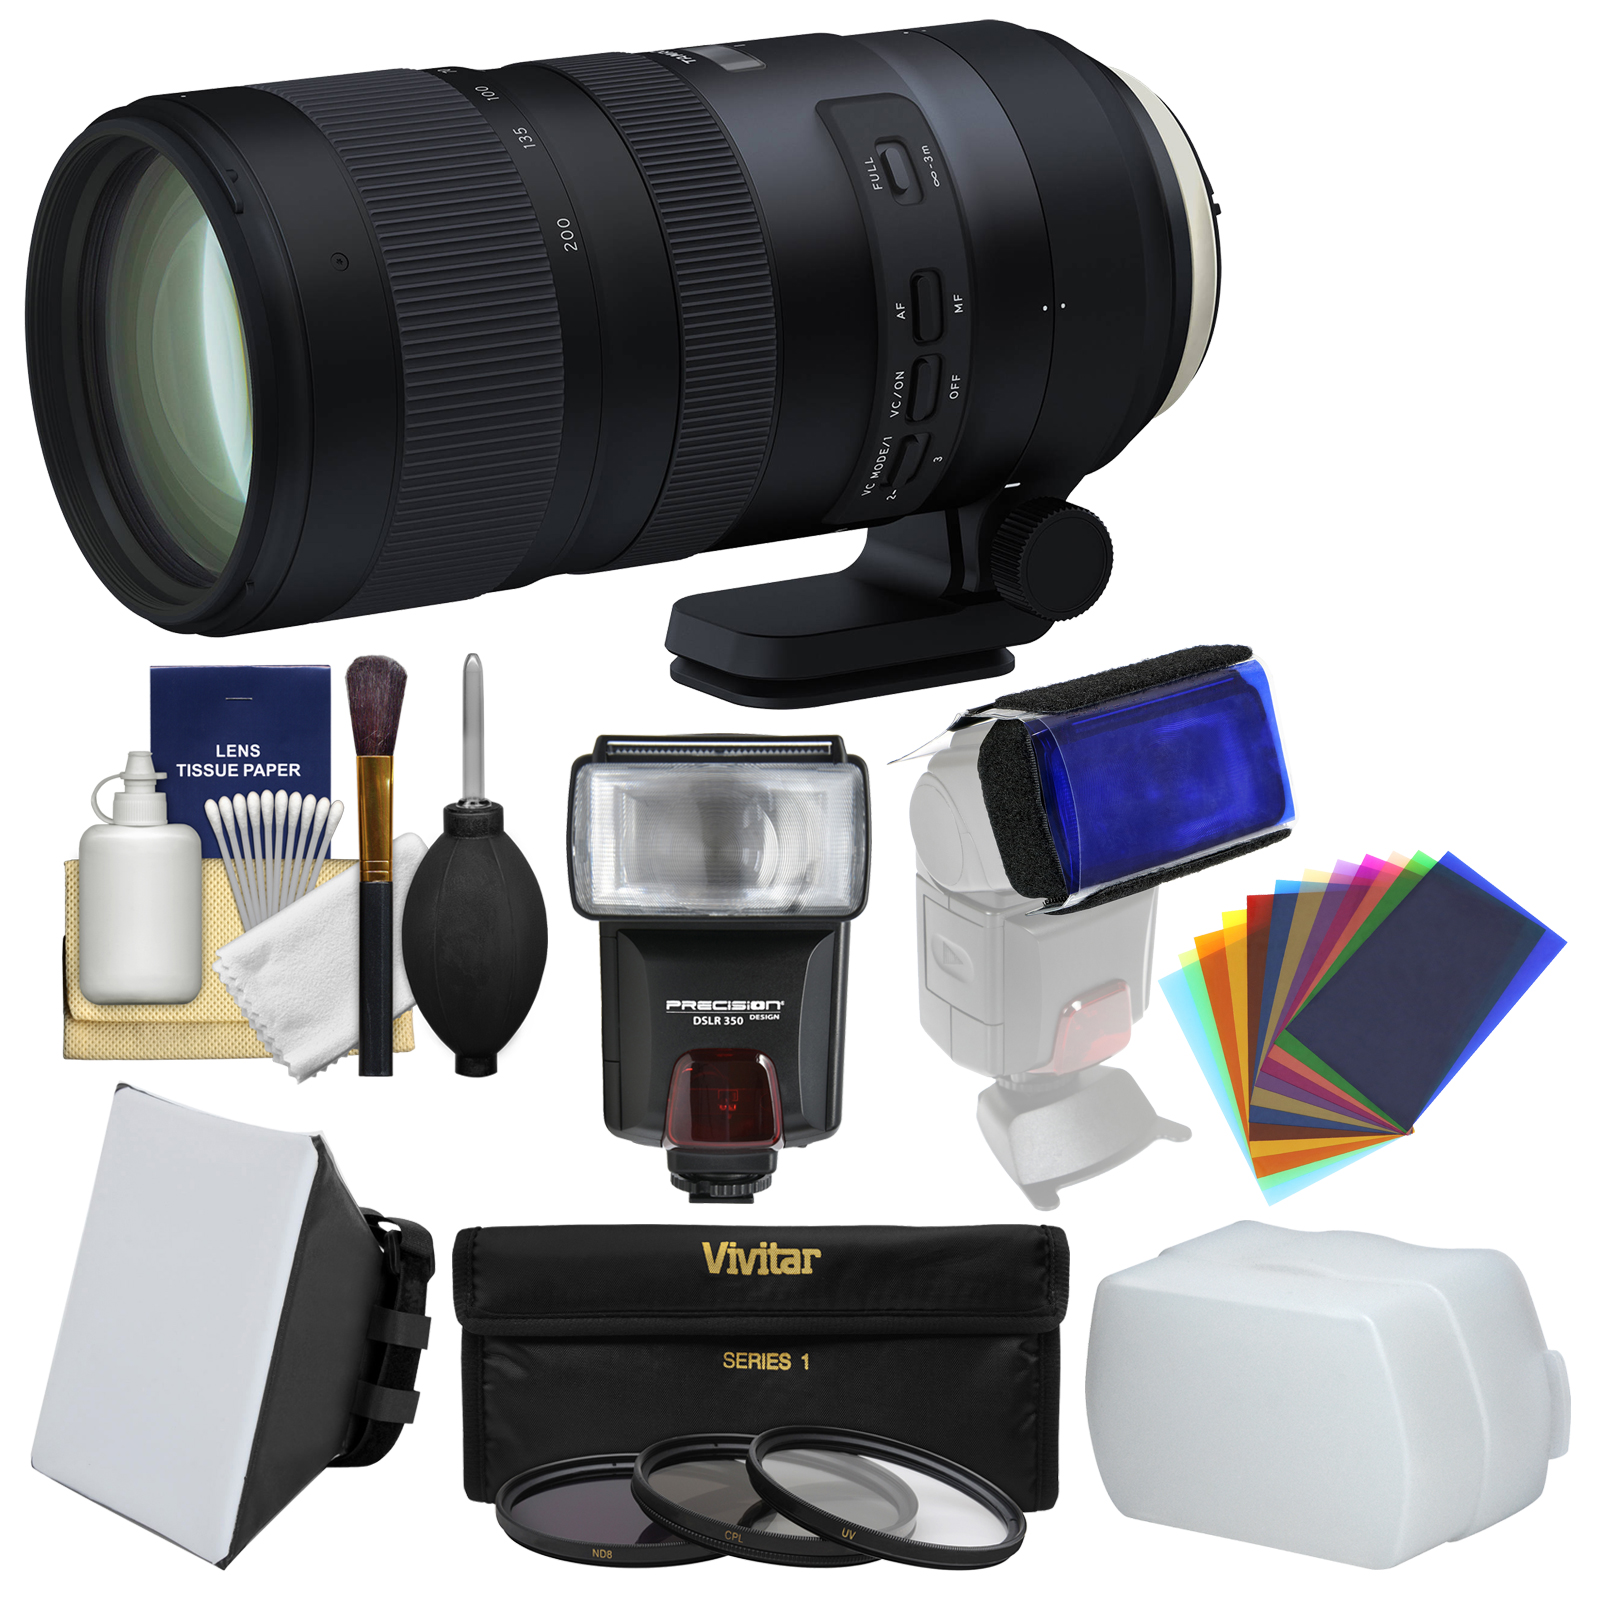 Tamron 70-200mm f 2.8 Di VC USD G2 Zoom Lens + 3 UV CPL ND8 Filters + Flash + Soft Box + Diffuser + Gel... by Tamron